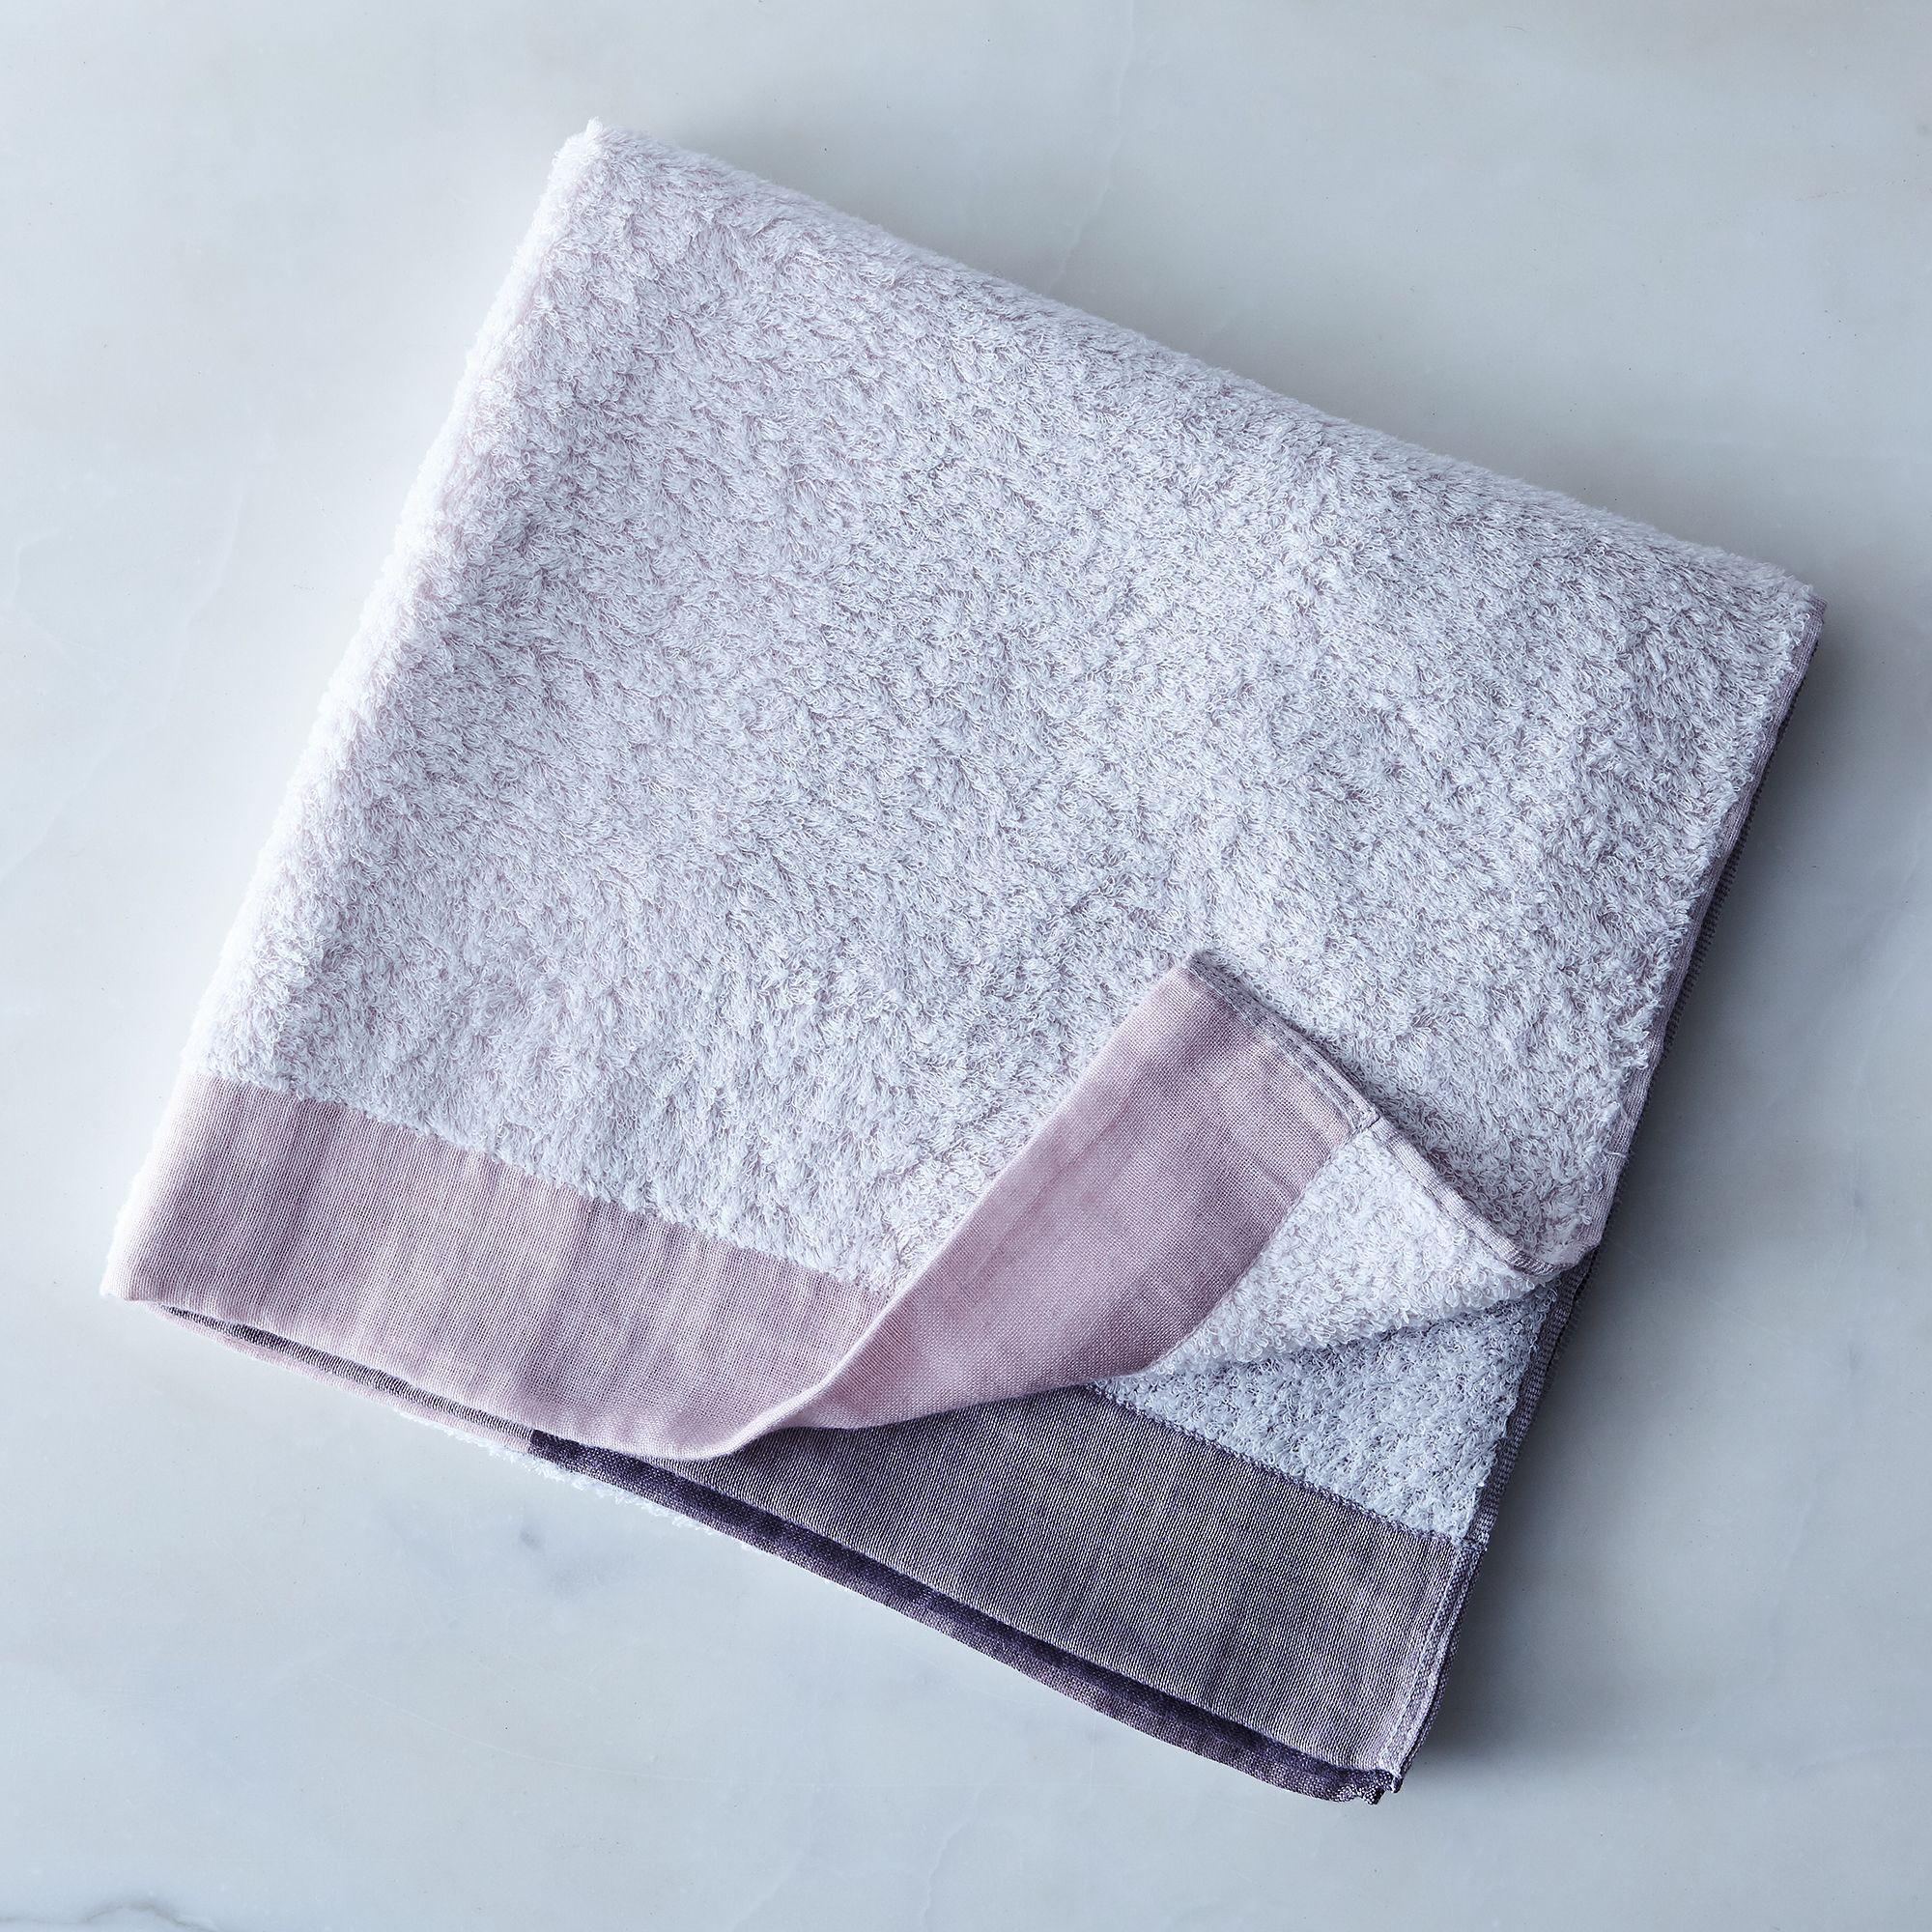 84327771 6671 4b7c 93c1 71b5a2f0e757  2017 0404 morihata international linen and cotton blend colorblock towels pink bath towel silo rocky luten 0437